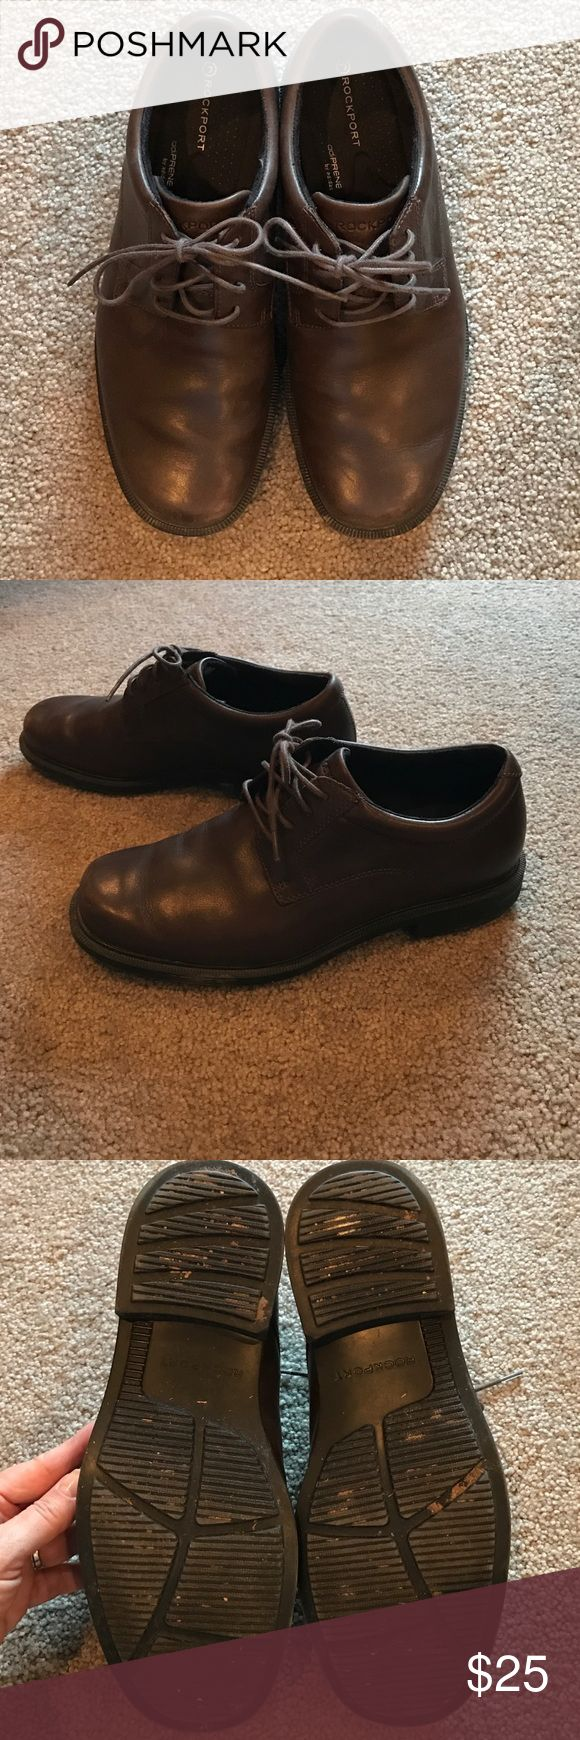 Rockport leather men's brown loafers size 7.5 Brown leather loafers by Rockport size 7 1/2. Great condition Rockport Shoes Loafers & Slip-Ons